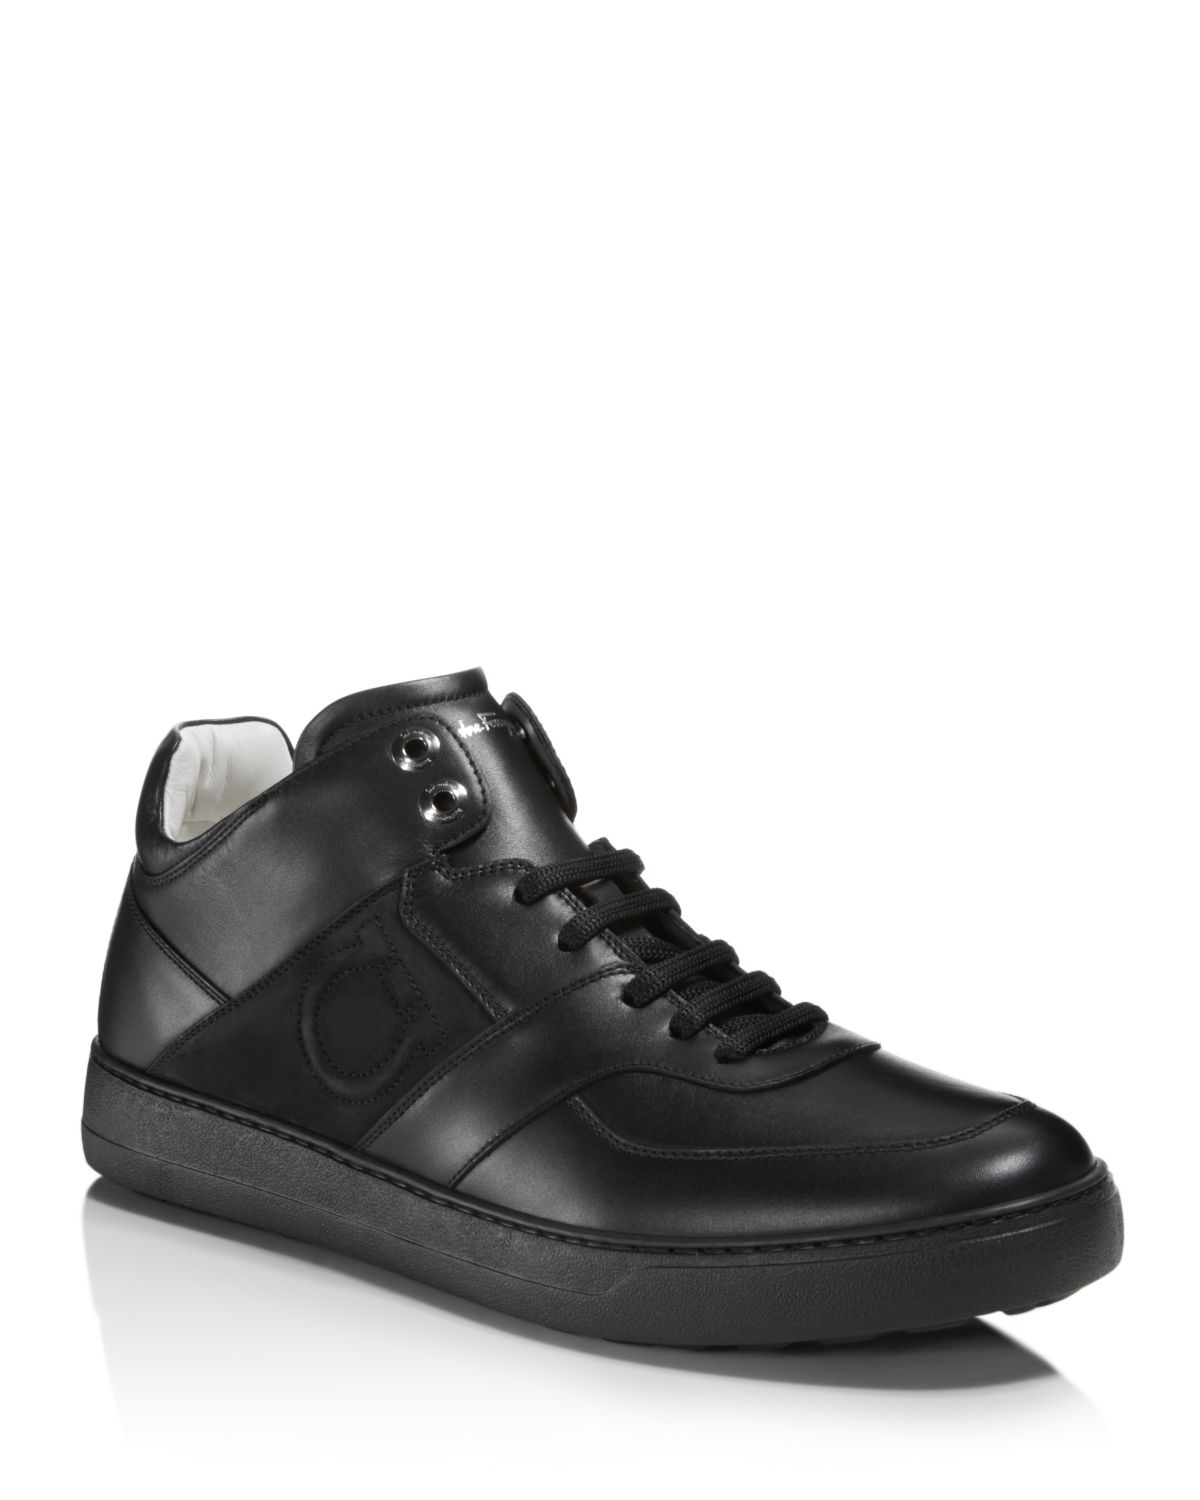 Salvatore FerragamoMen's Cliff Leather Mid Top Sneakers - 100% Exclusive